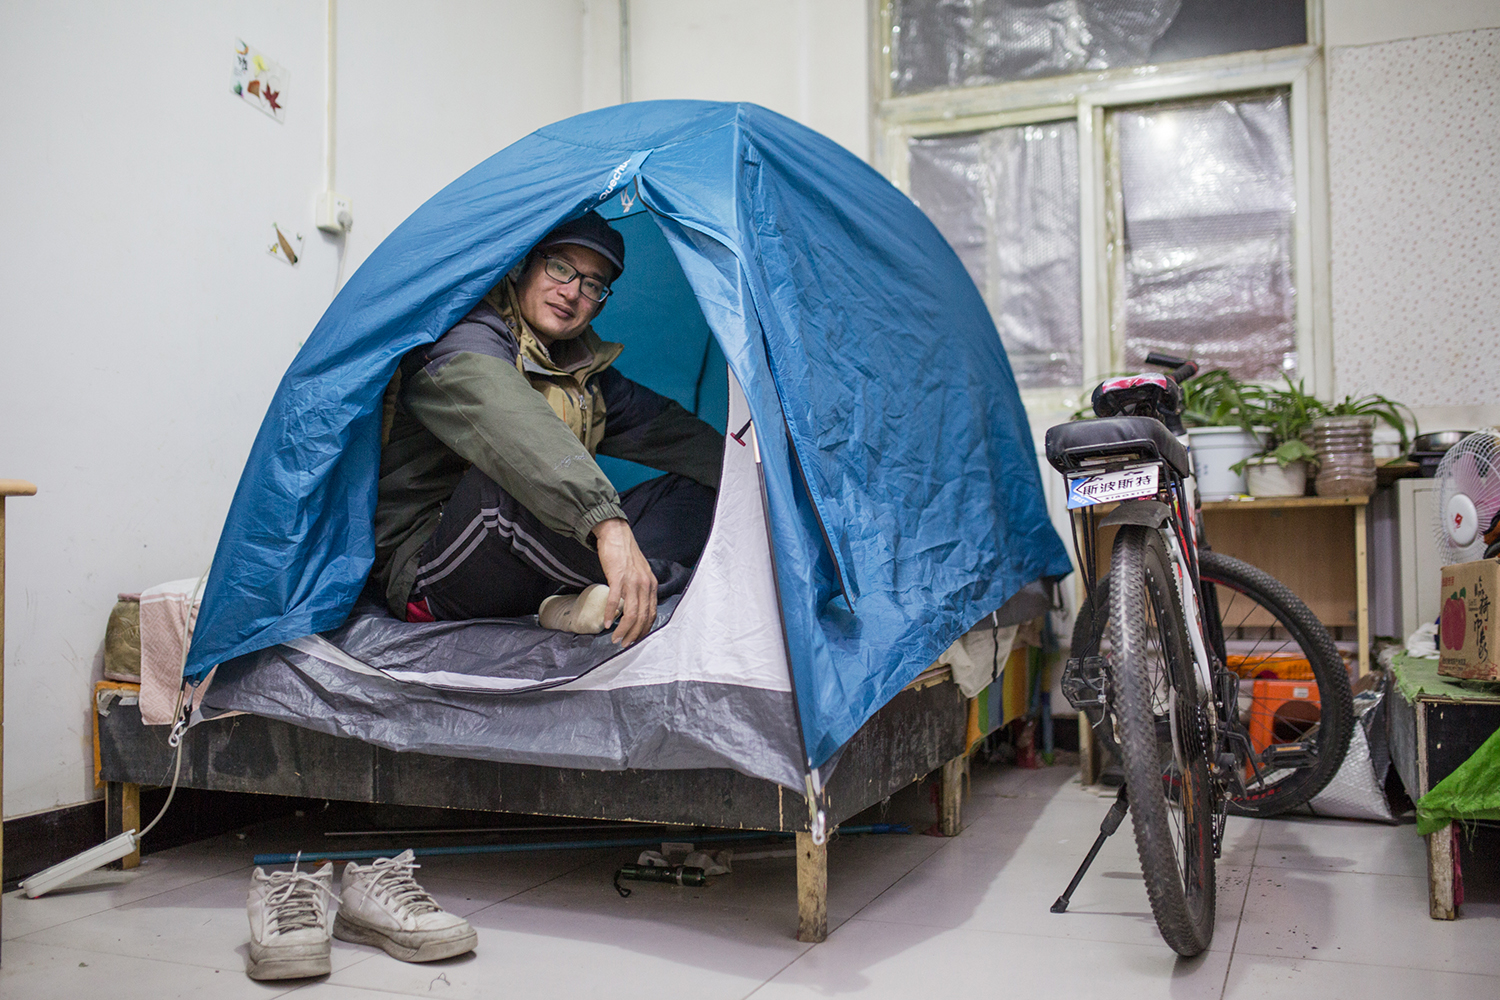 November 18, 30-year-old Xu Qinsheng stays in a tent on his bed to keep warm, in Banbi village, Beijing. He has lived here for four years. But the building hasn't installed heating yet because of new prohibitions on the burning of coal. As China tries to tackle air pollution by using cleaner fuel, shortages of natural gas leave some places without heat amid freezing winter temperatures. (Zhou Na)